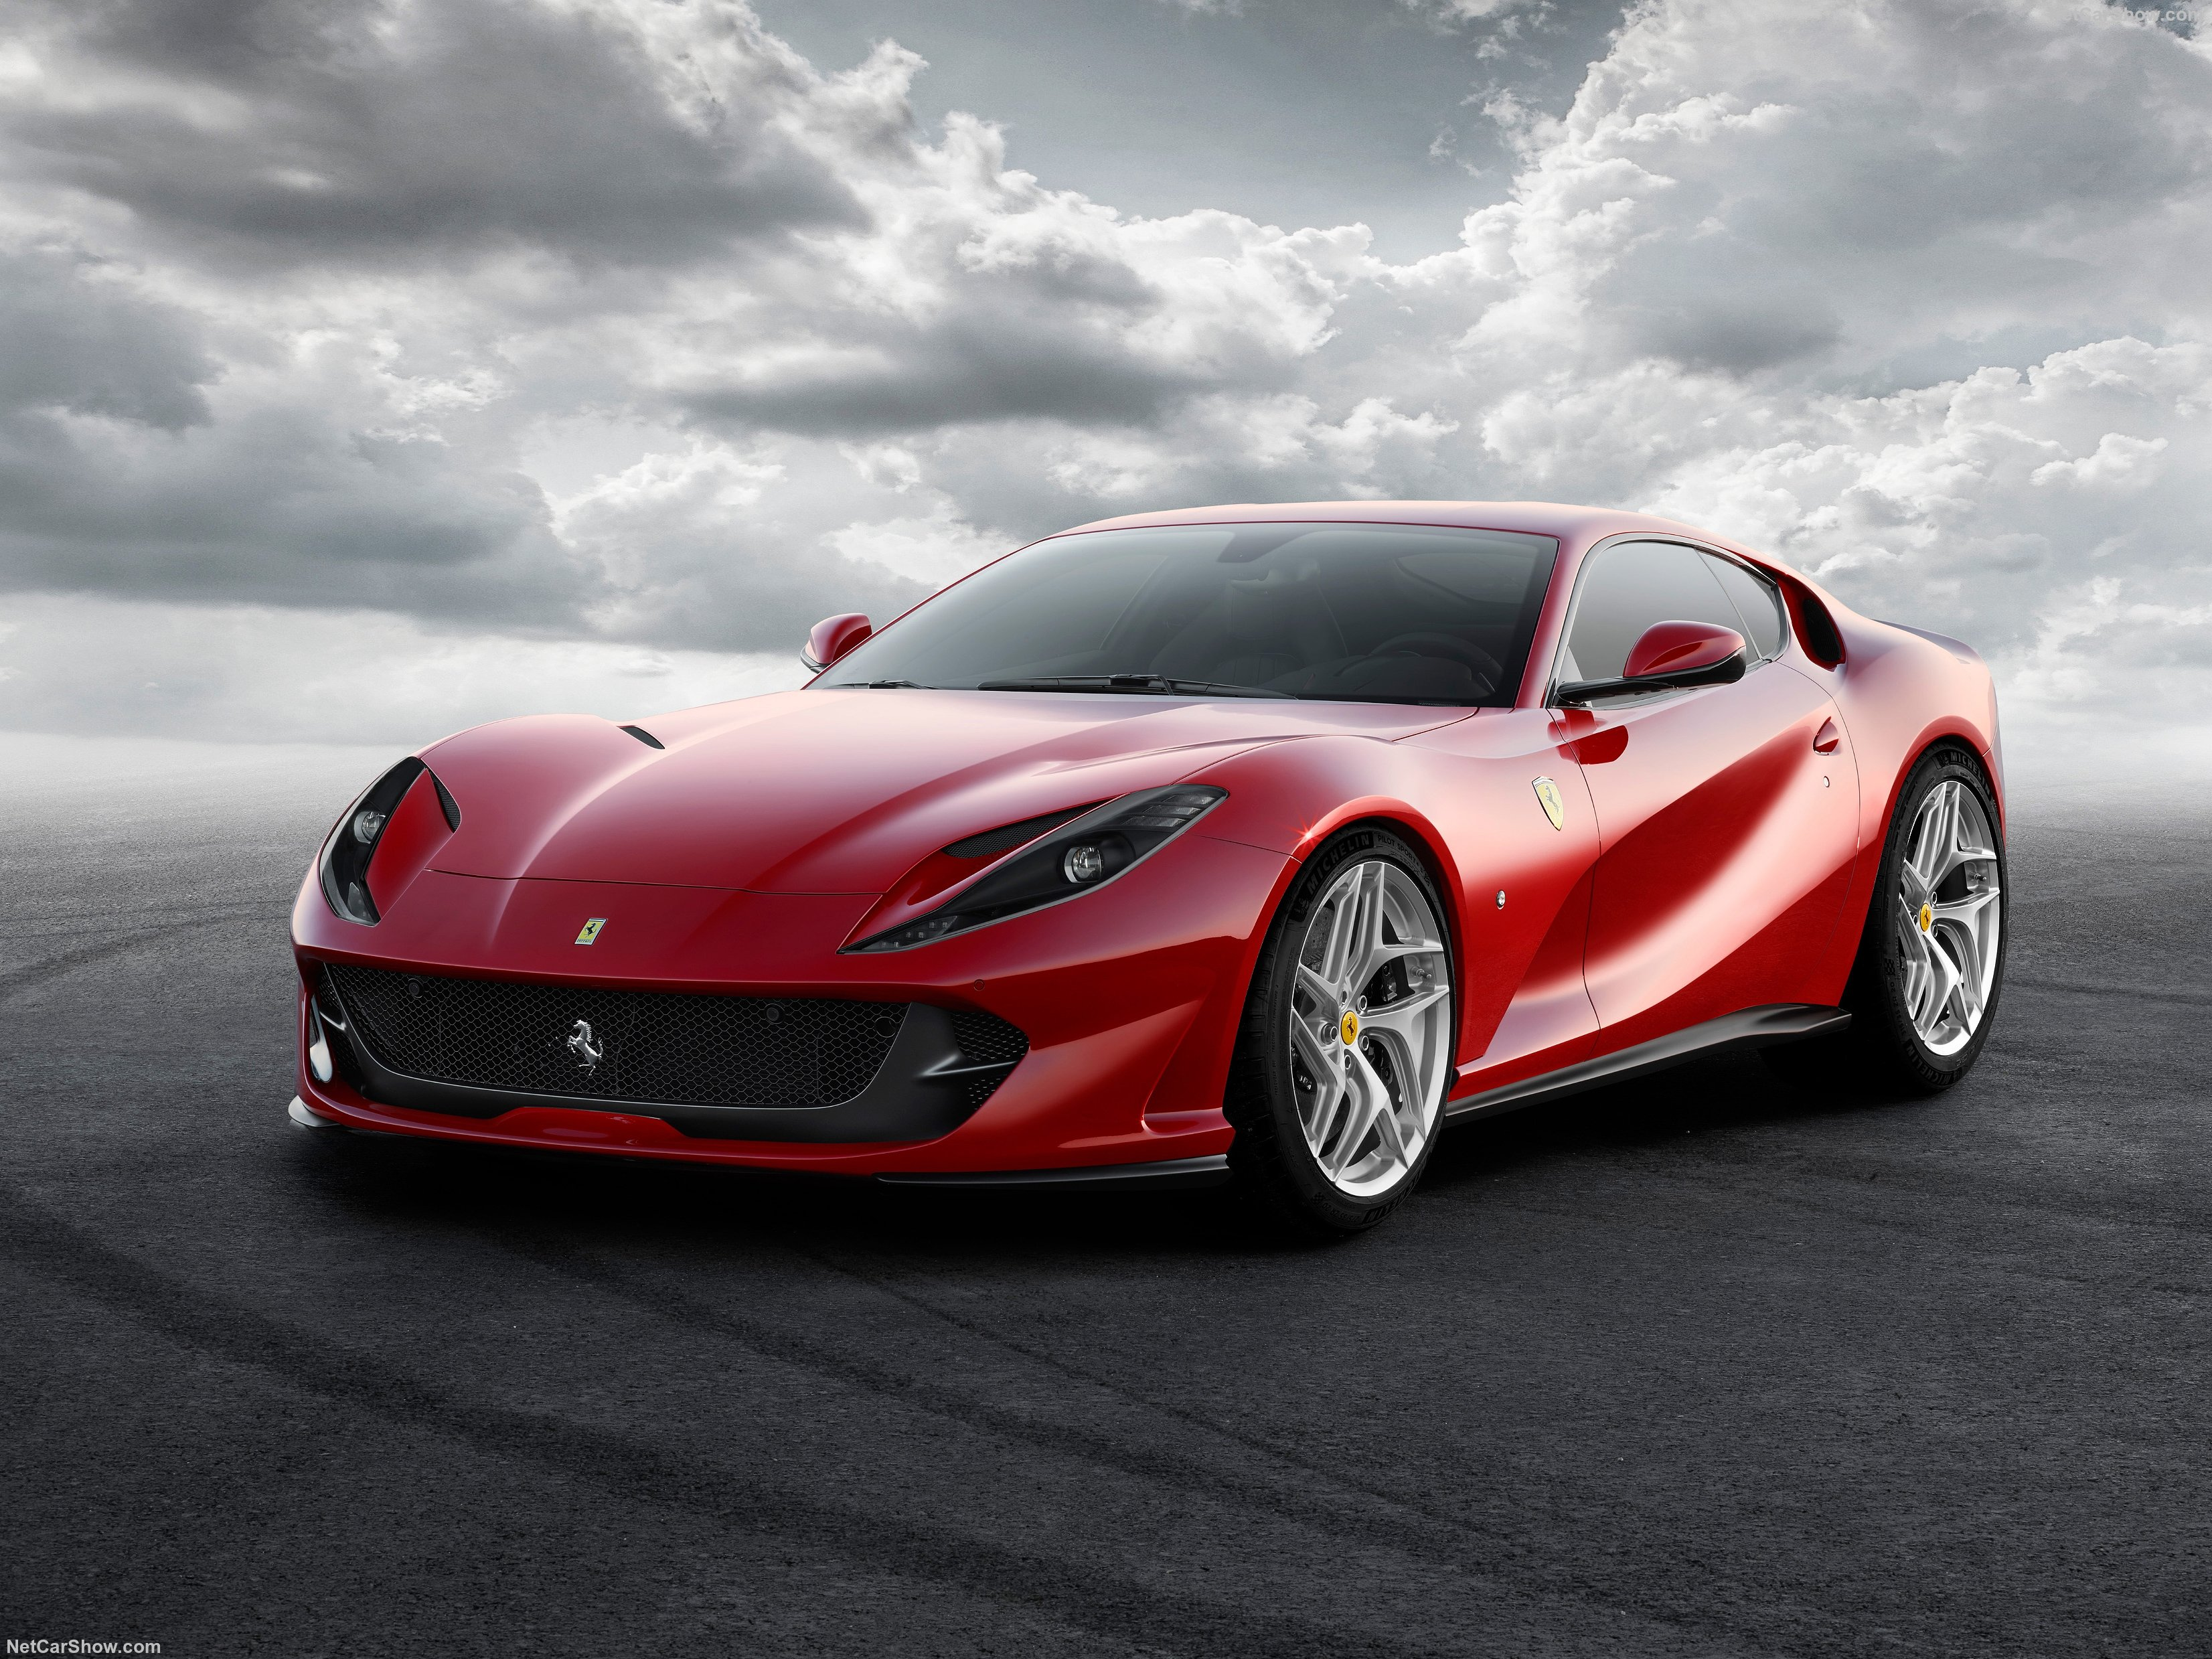 Drawn ferarri wallpaper & specs Ferrari (2018) Superfast